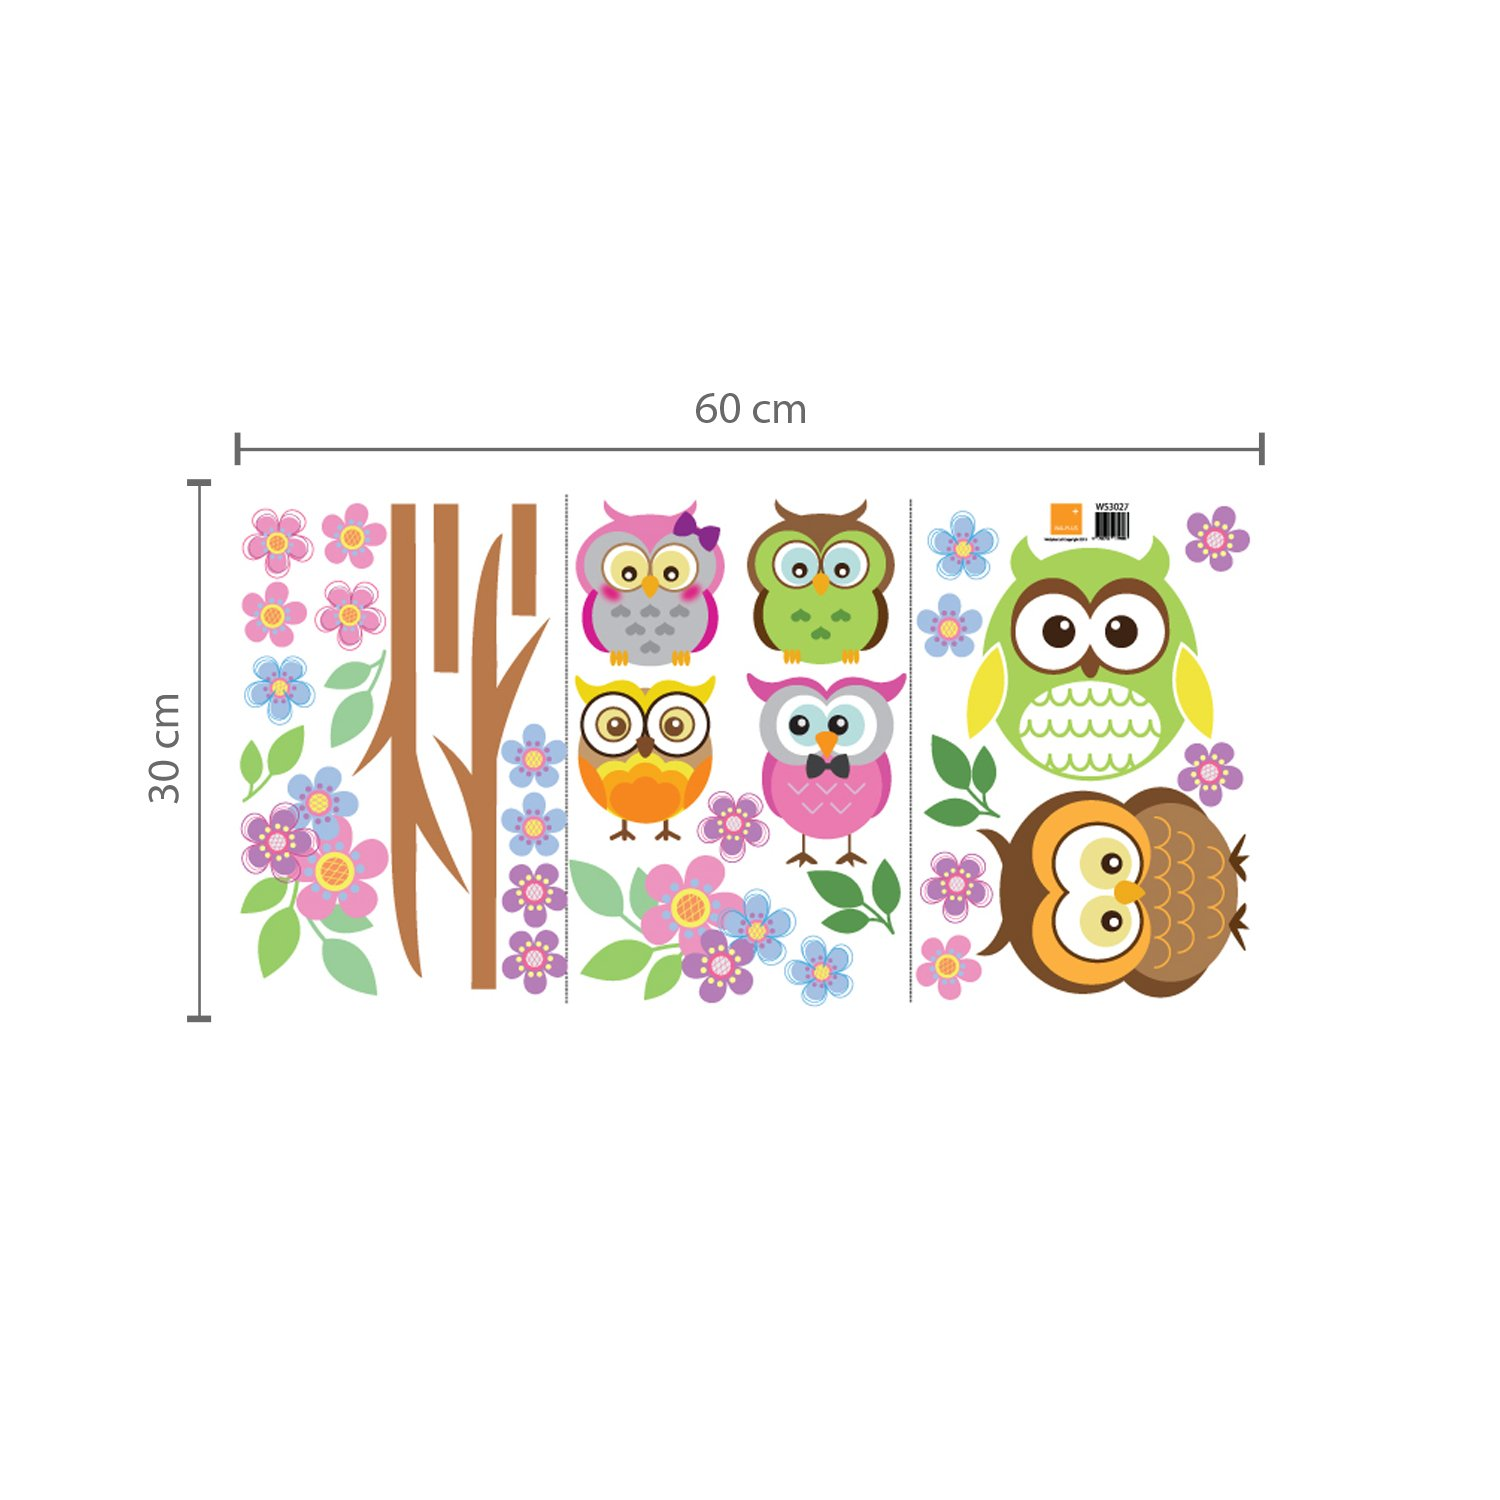 Walplus 100x60 cm wall stickers owl flower tree removable self adhesive mural art decals vinyl home decoration diy living bedroom office décor wallpaper